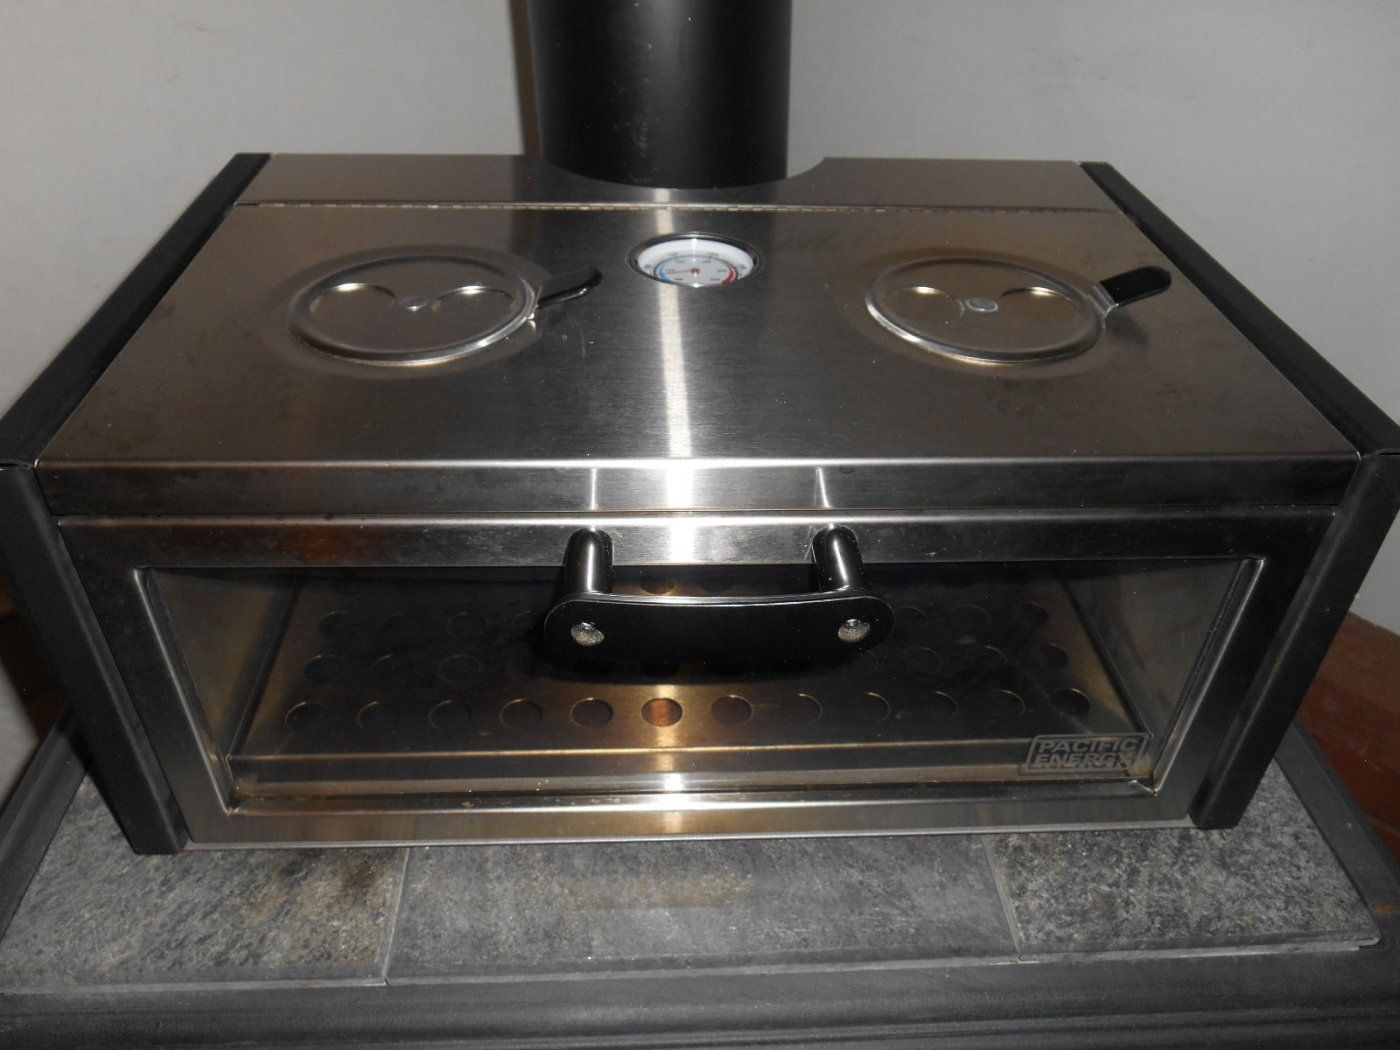 PE Stove Top Oven 1. - Stove Top Ovens? Hearth.com Forums Home